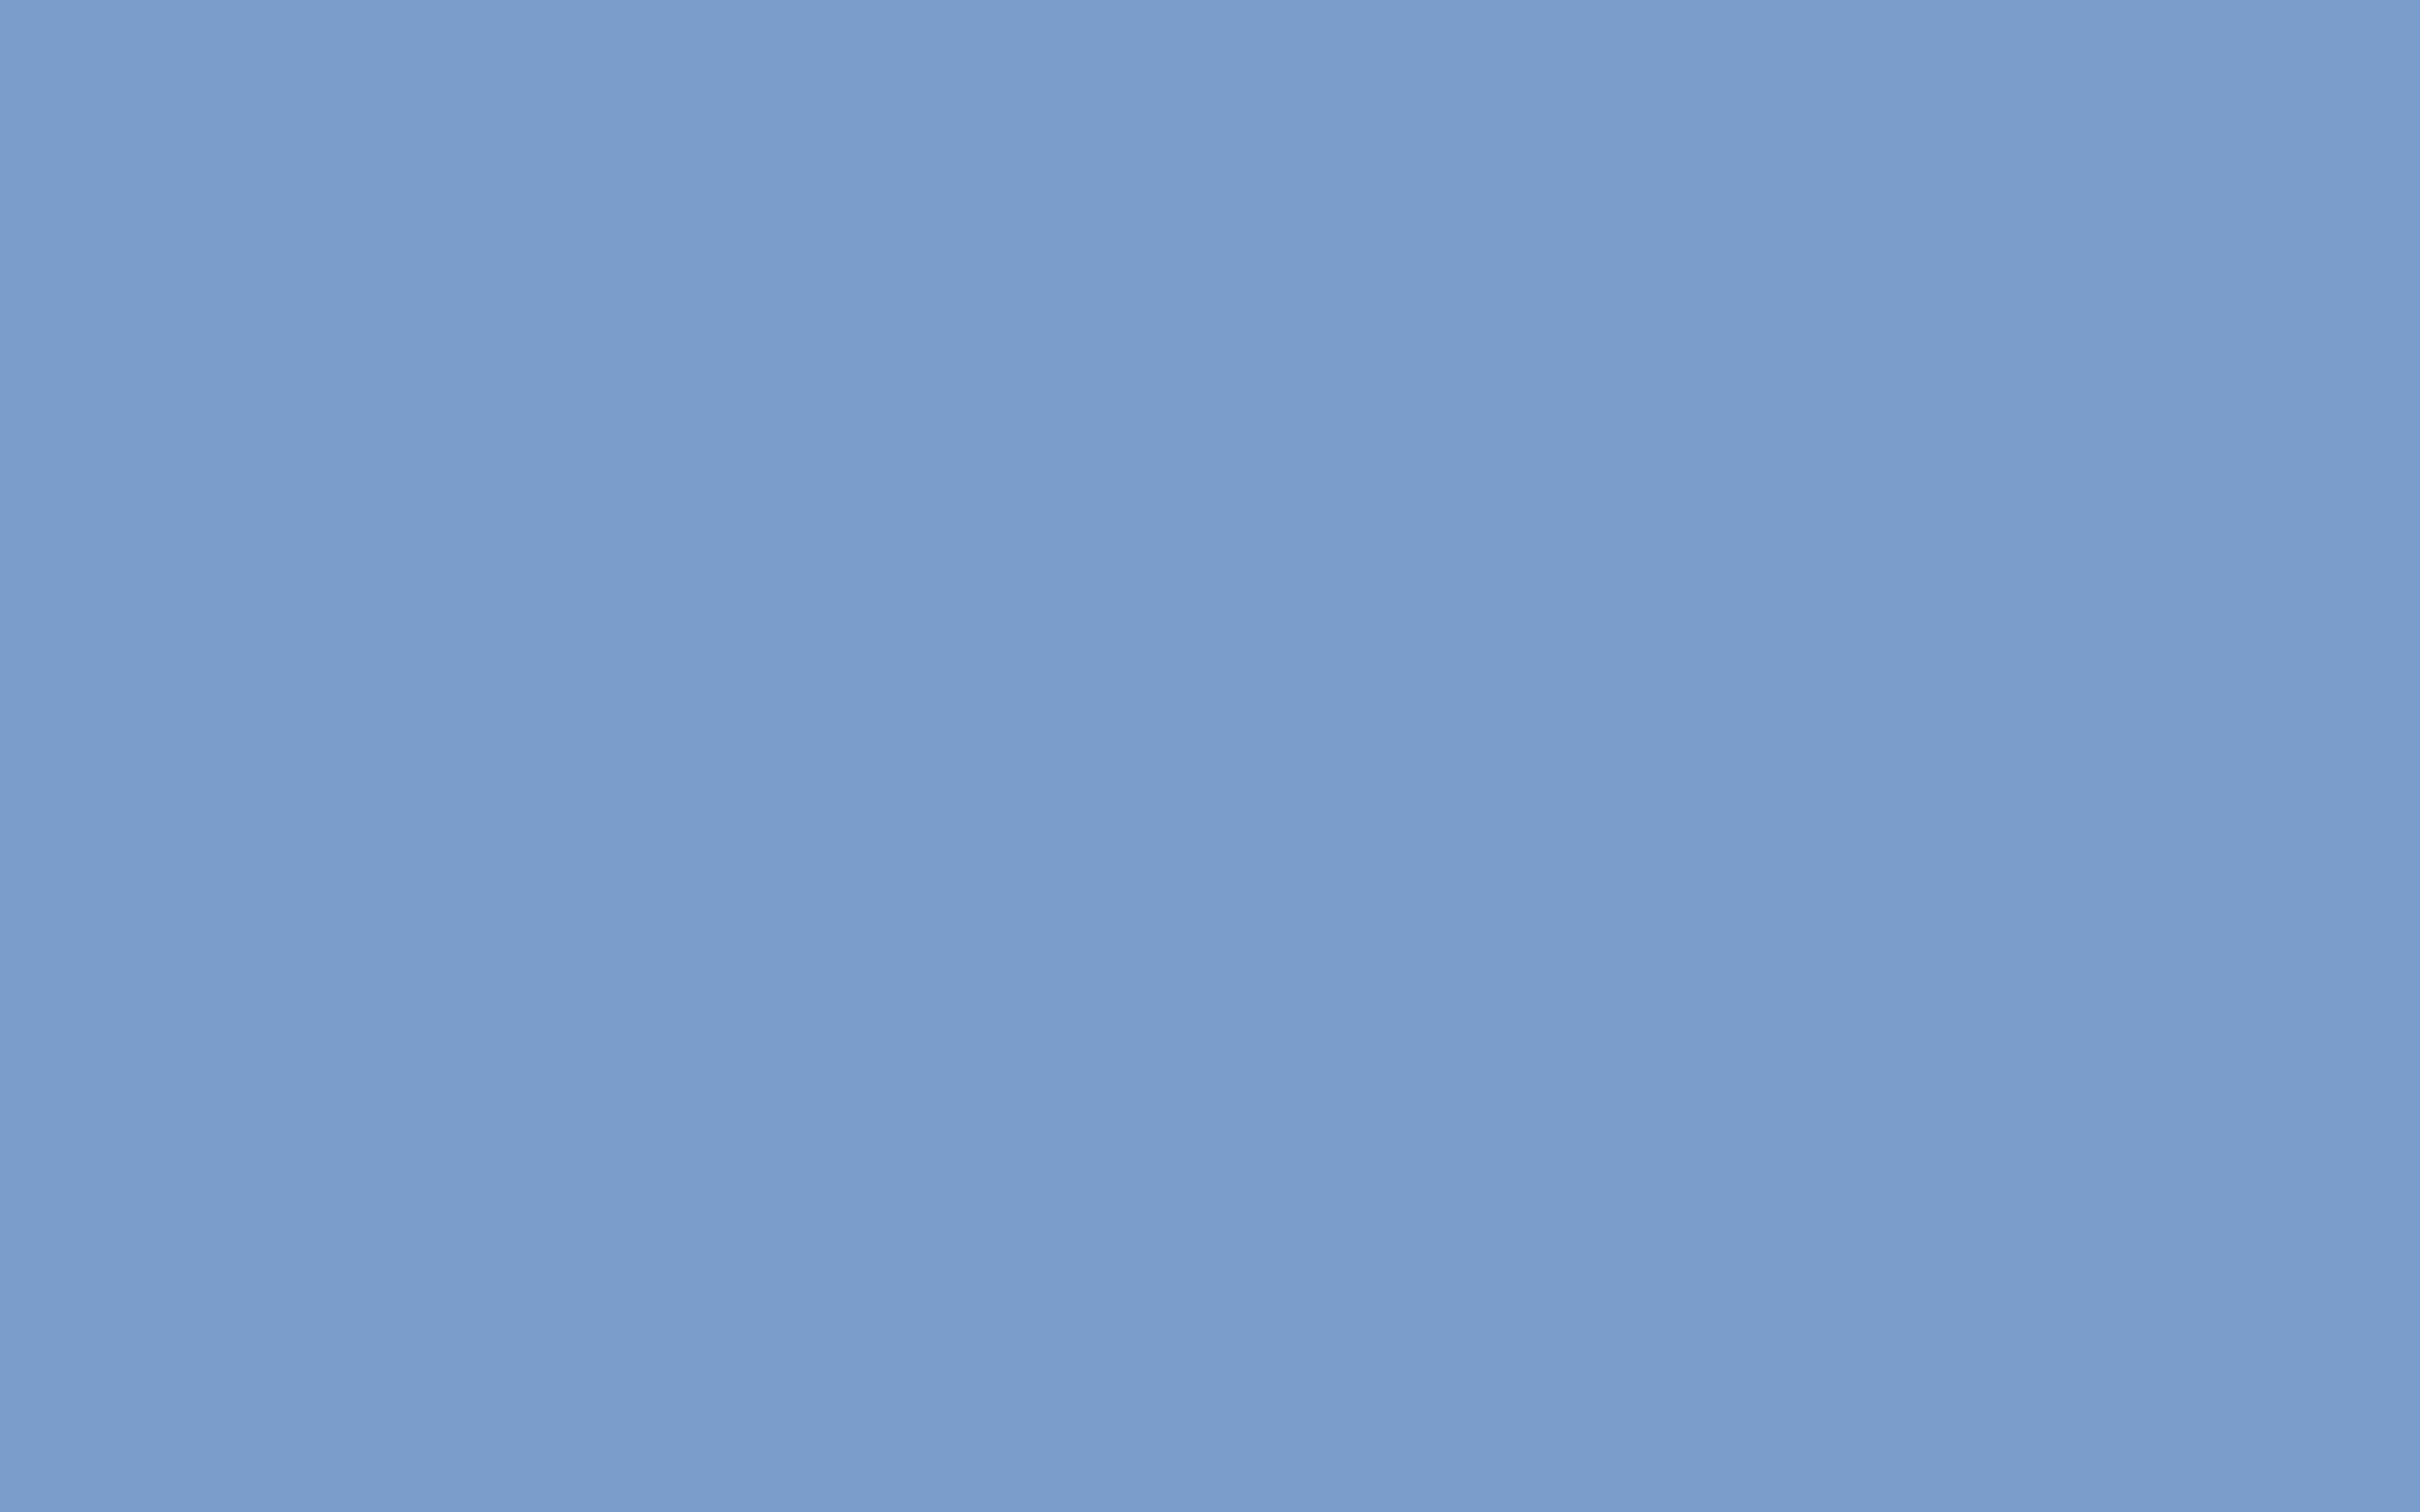 2880x1800 Dark Pastel Blue Solid Color Background